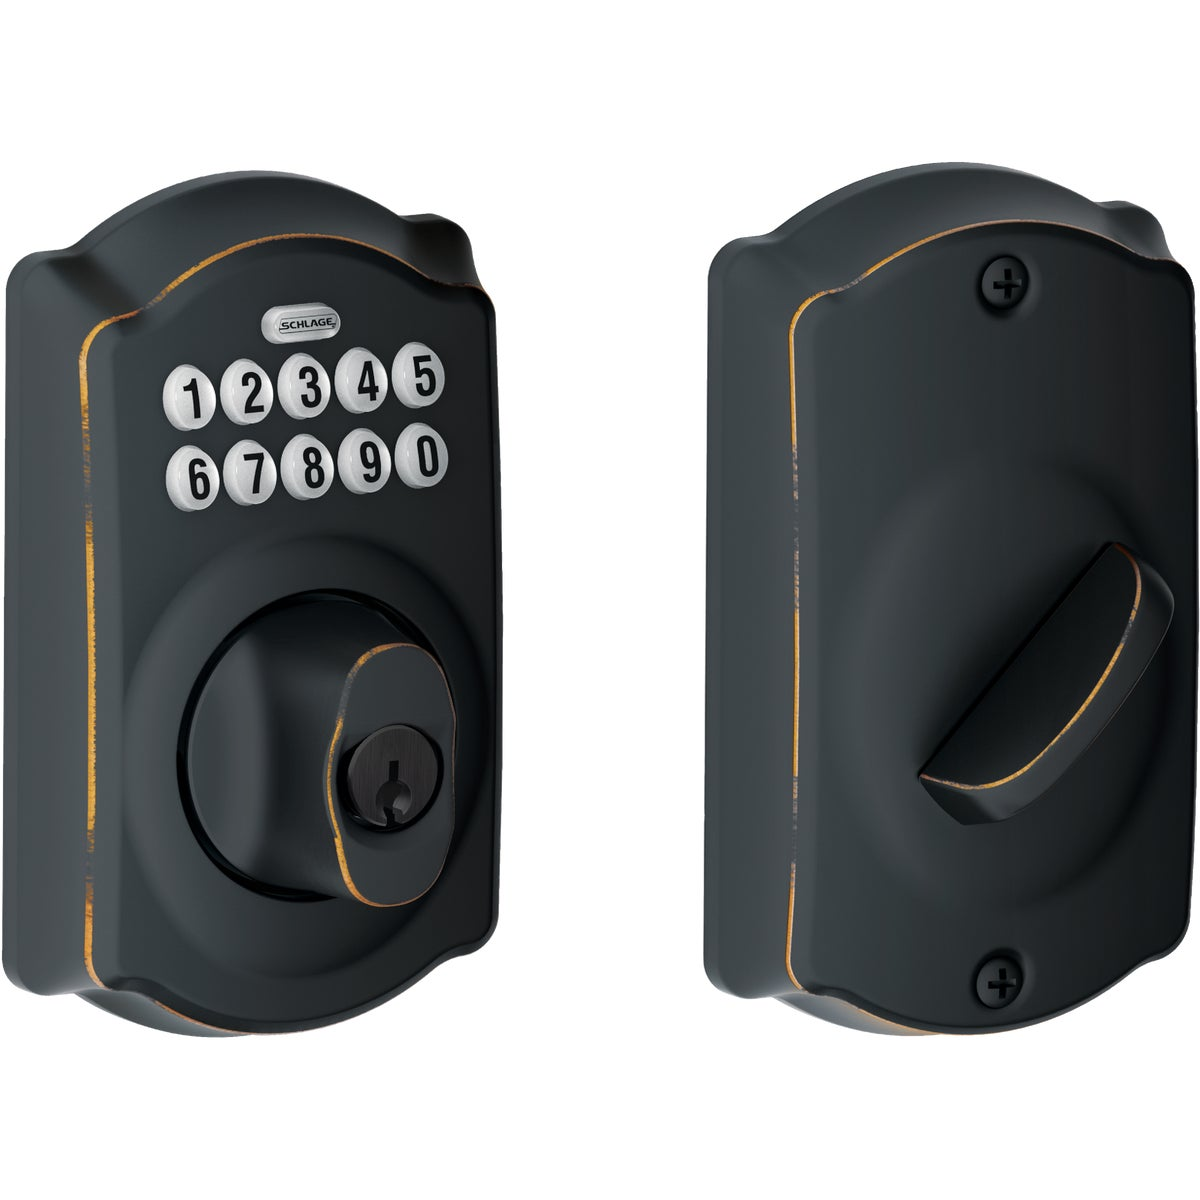 ELECTRONIC LOCK DEADBOLT